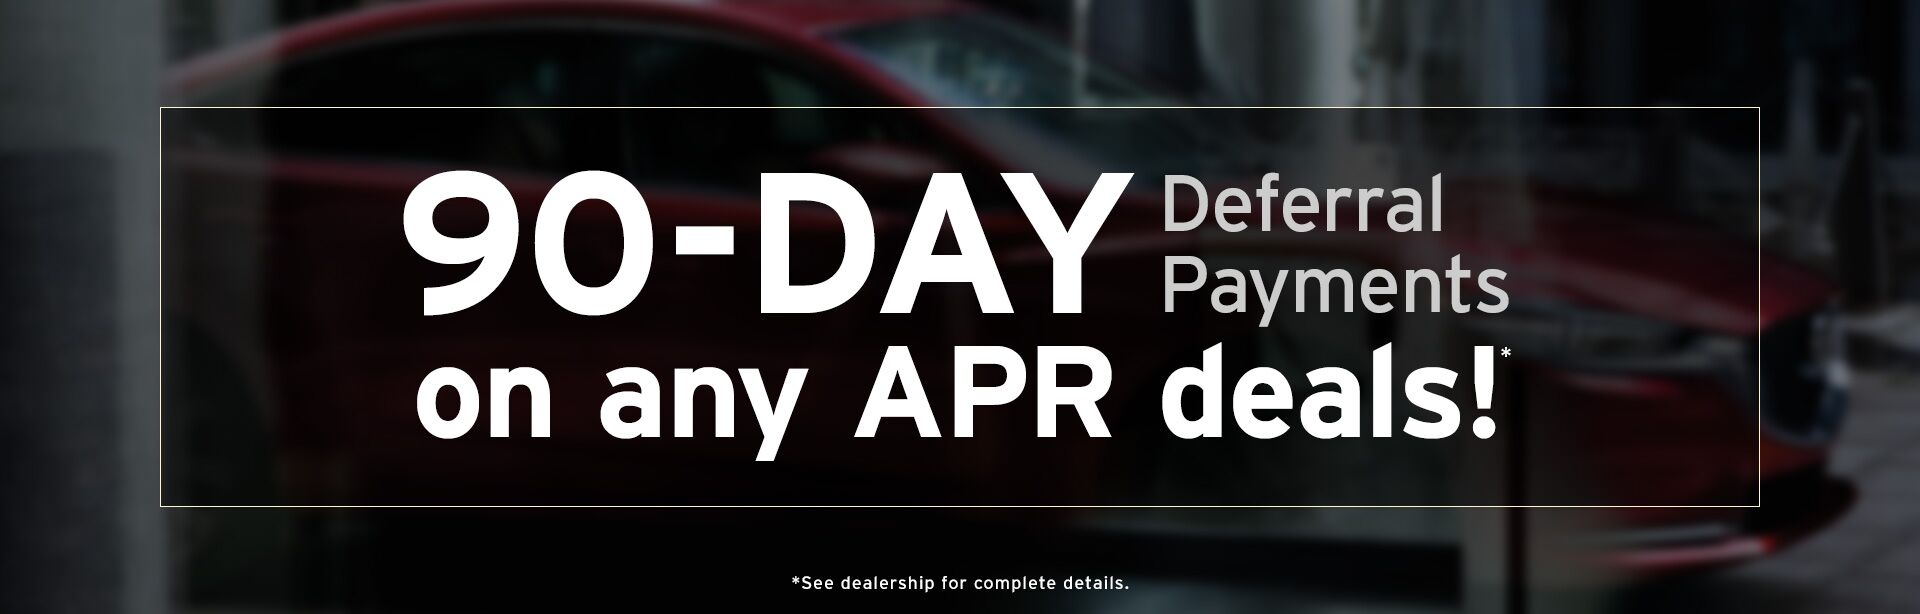 90-Day Deferral Payments